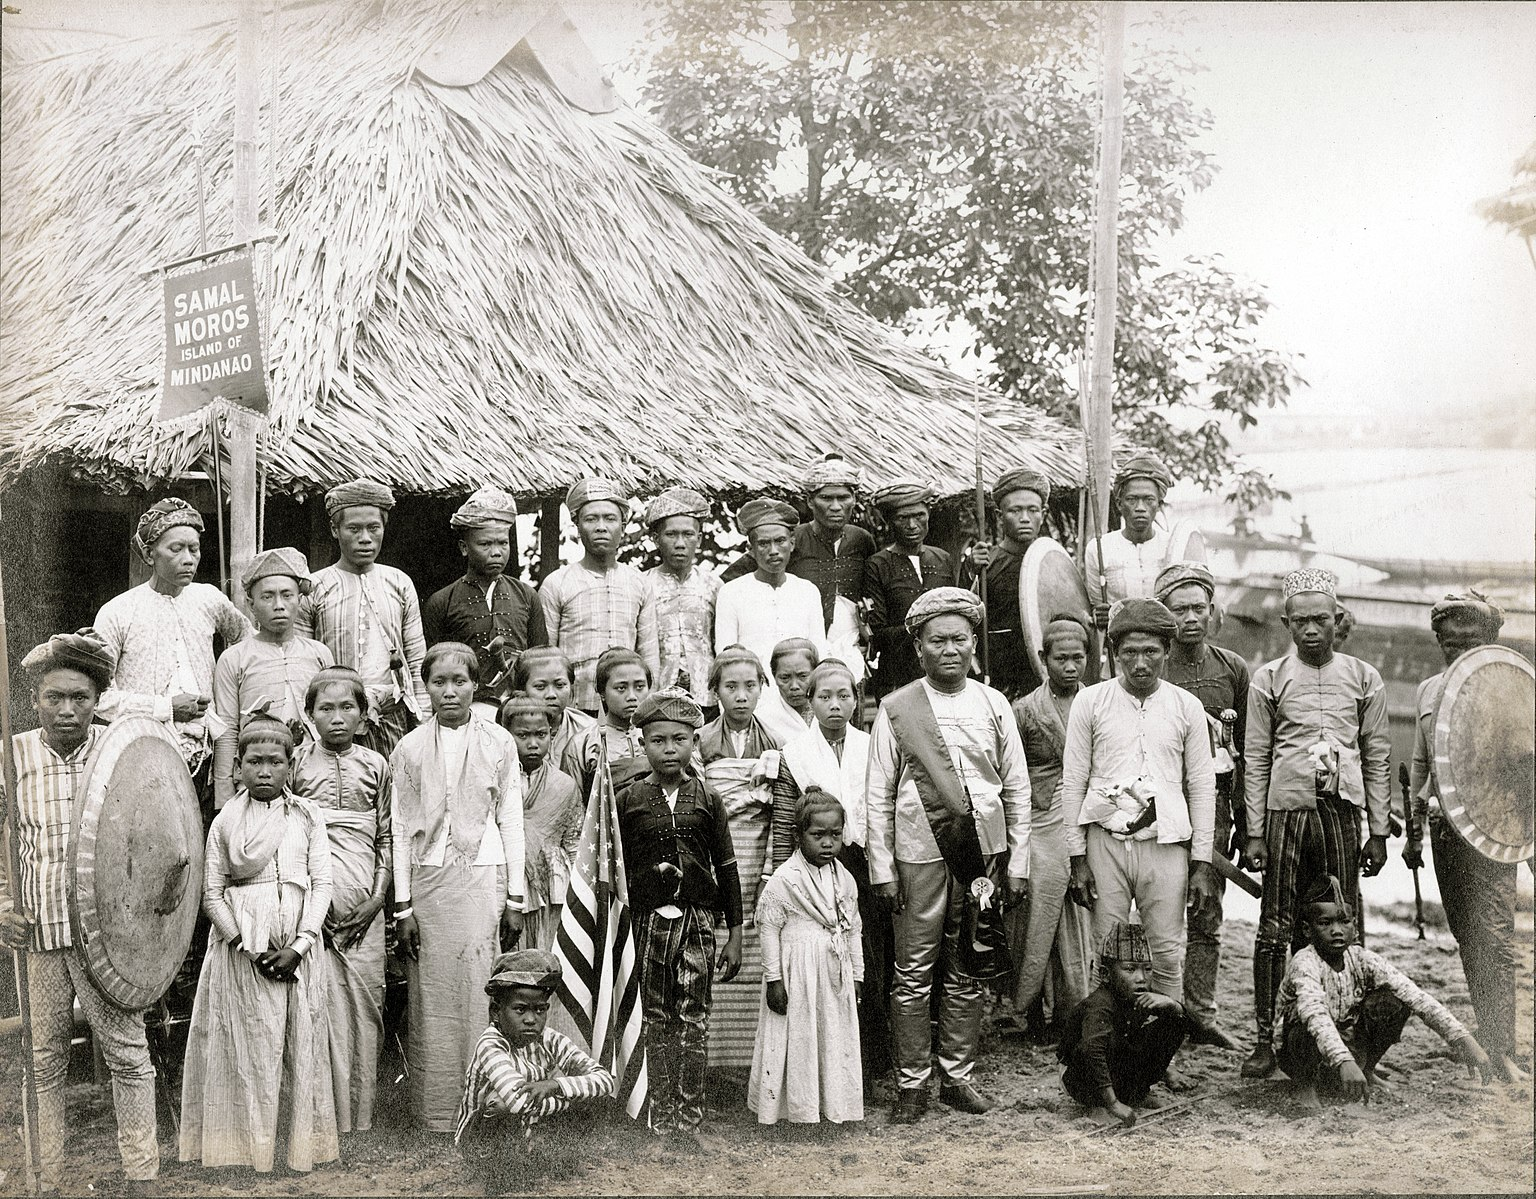 Colony of Samal Moros from the Philippines in a Department Of Anthropology exhibit at the 1904 World's Fair.